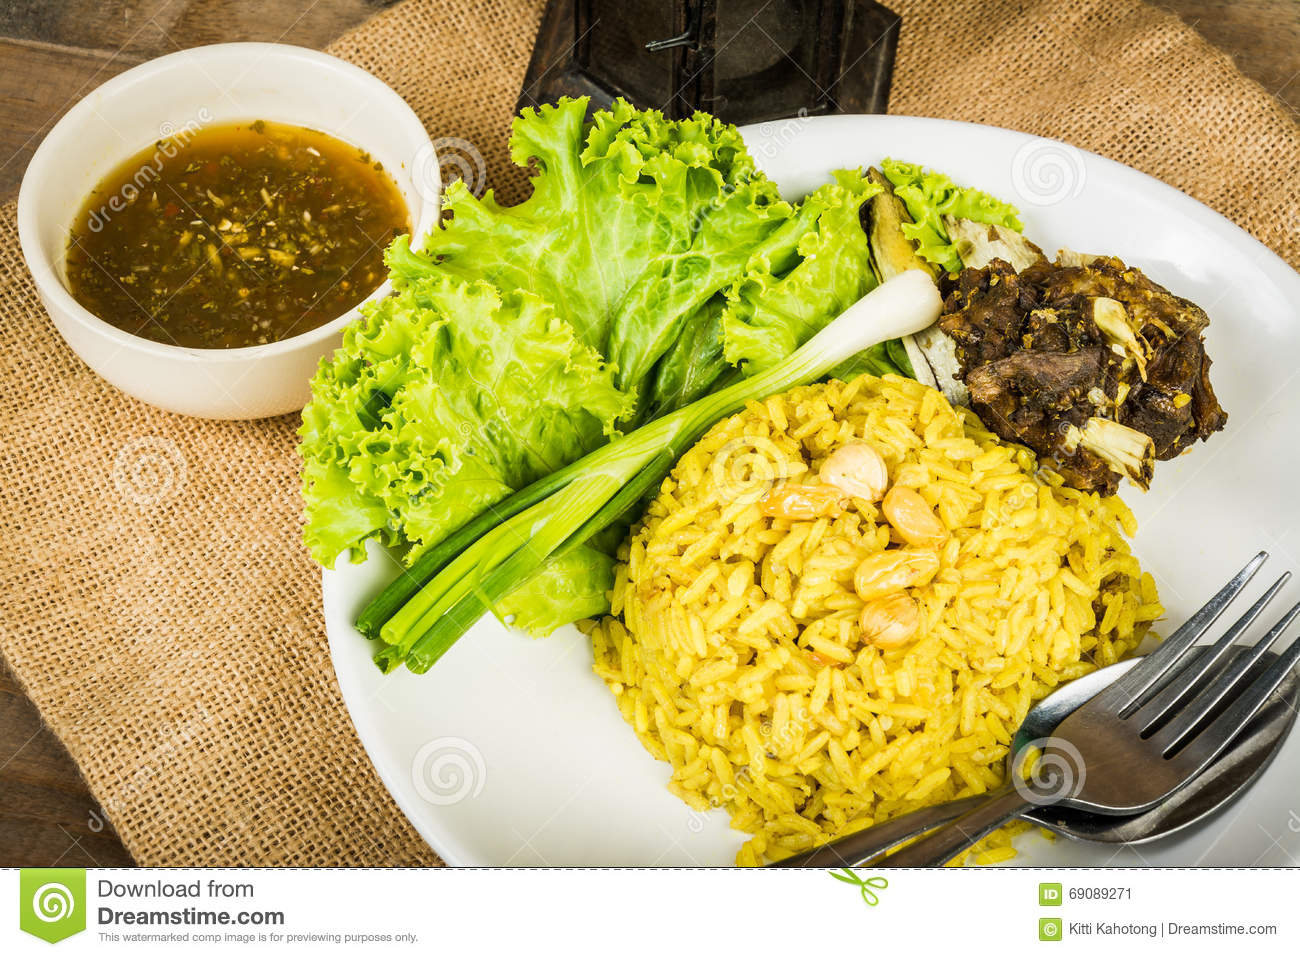 Biryani goat meat stock image  Image of south, meat, chicken